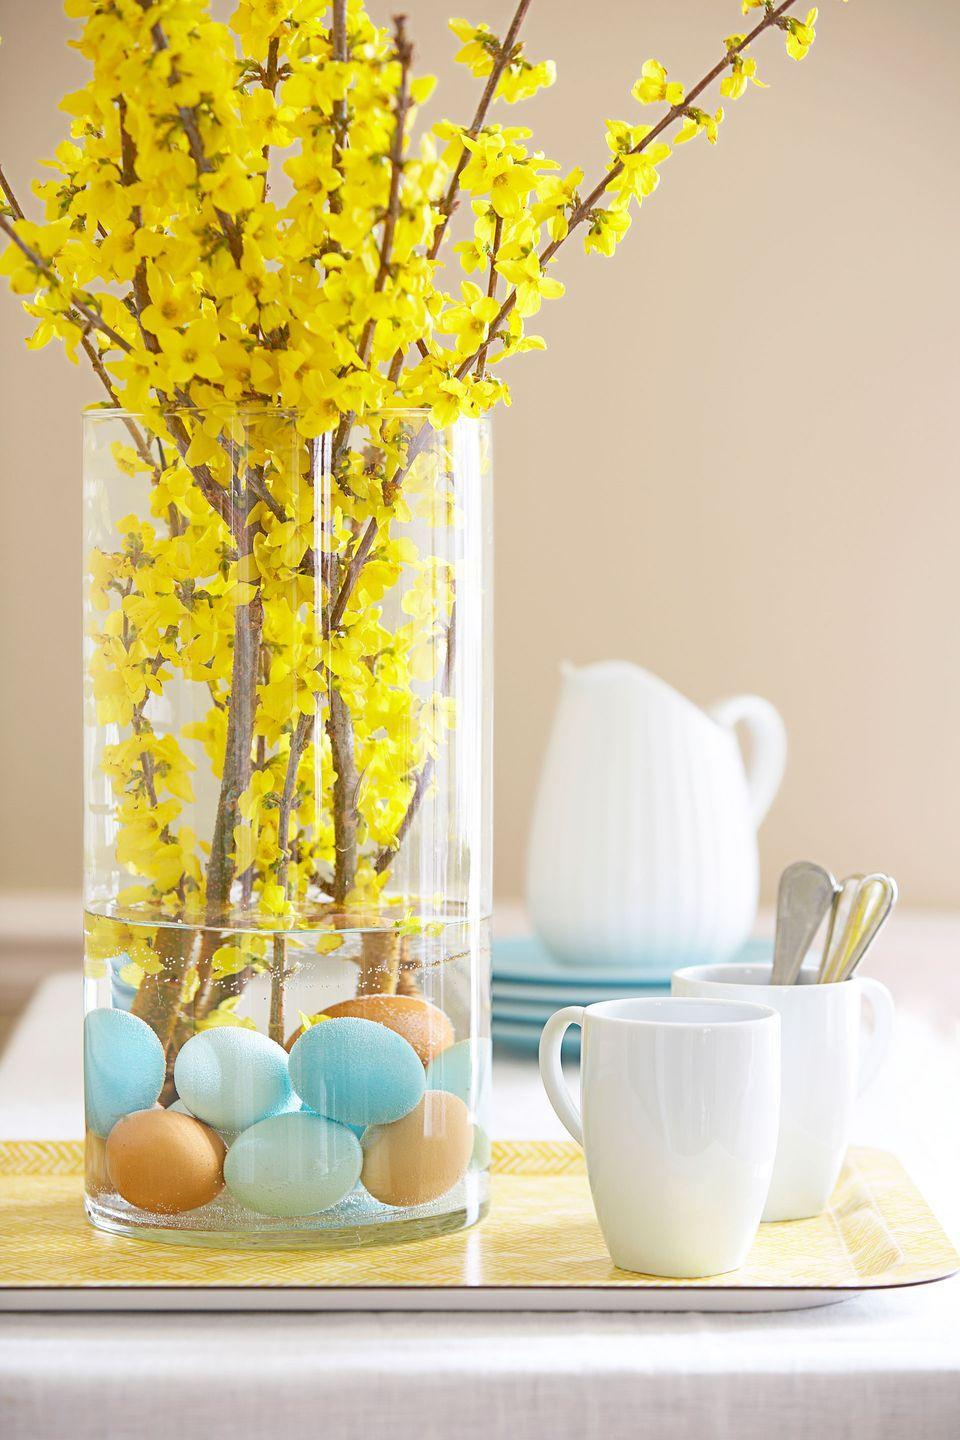 """<p>Anchor brilliant forsythia — and give a tongue-in-cheek nod to Easter — with subtly hued hard-cooked eggs. Carefully place a dozen brown, white, and dyed ones (rinse them well first) into a vase, add water, and insert branches.</p><p><a class=""""link rapid-noclick-resp"""" href=""""https://www.amazon.com/Hosley-Weddings-Aromatherapy-Projects-Lanterns/dp/B01N8WU35P?tag=syn-yahoo-20&ascsubtag=%5Bartid%7C10055.g.2217%5Bsrc%7Cyahoo-us"""" rel=""""nofollow noopener"""" target=""""_blank"""" data-ylk=""""slk:BUY VASE"""">BUY VASE</a></p>"""